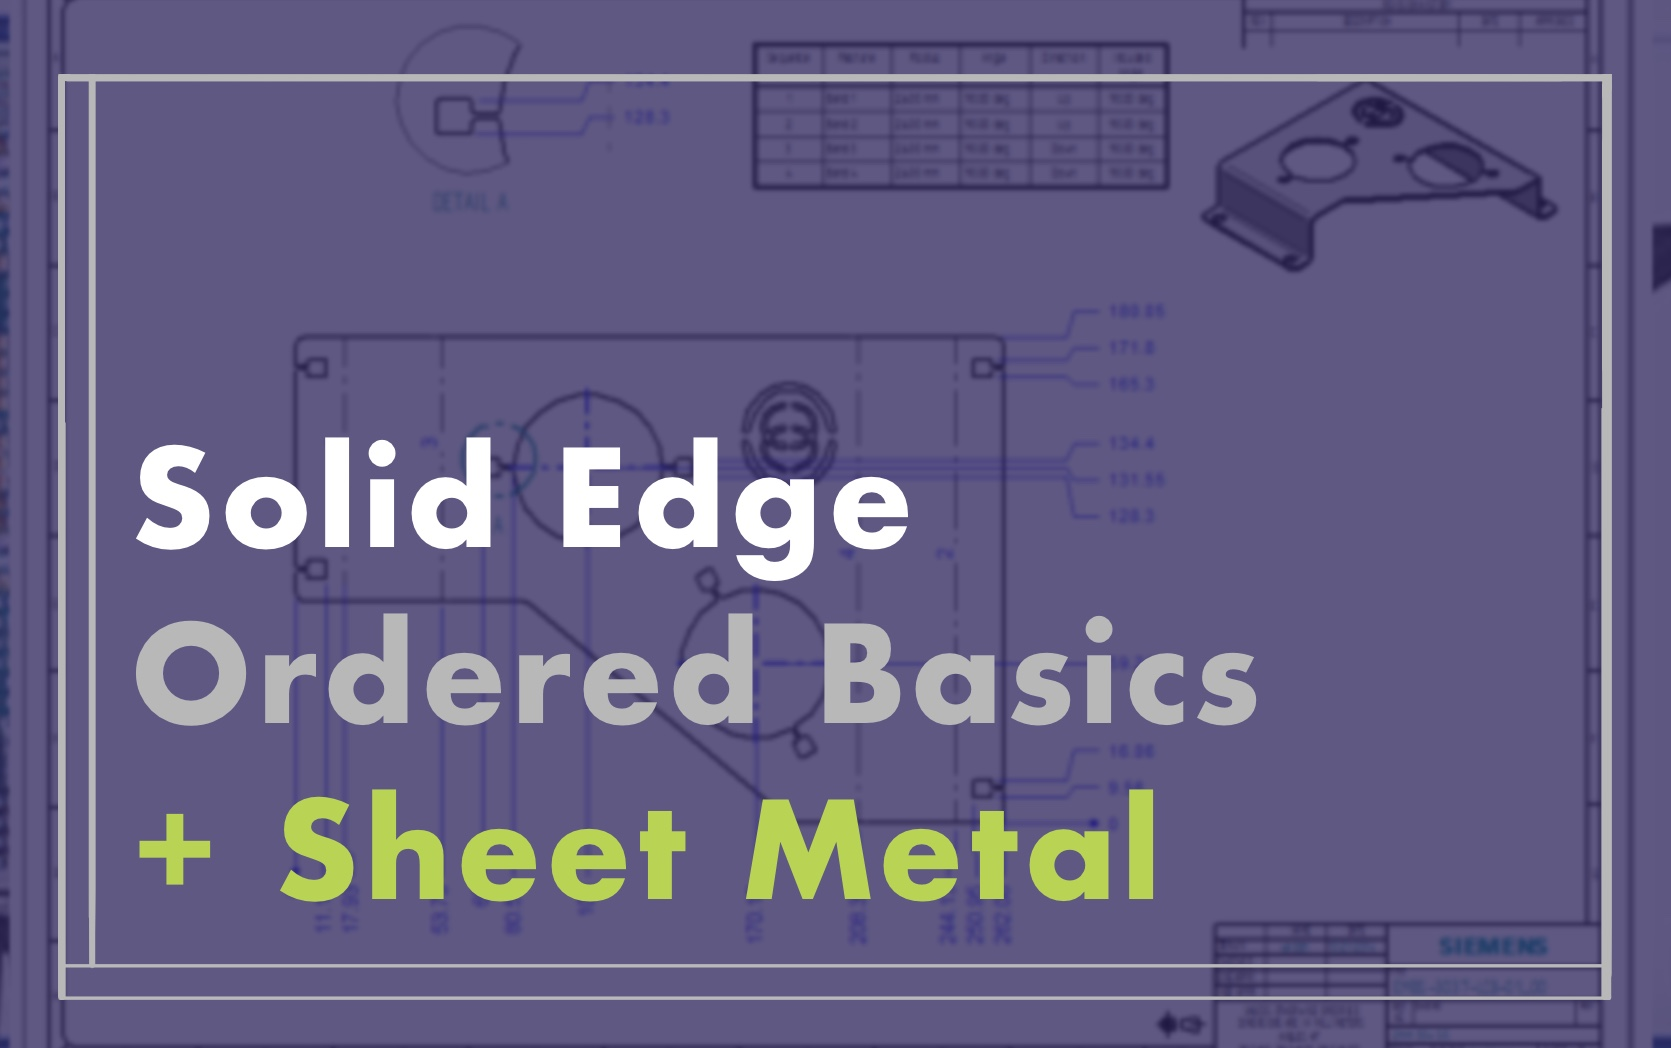 Solid Edge Ordered Basics + Sheet Metal